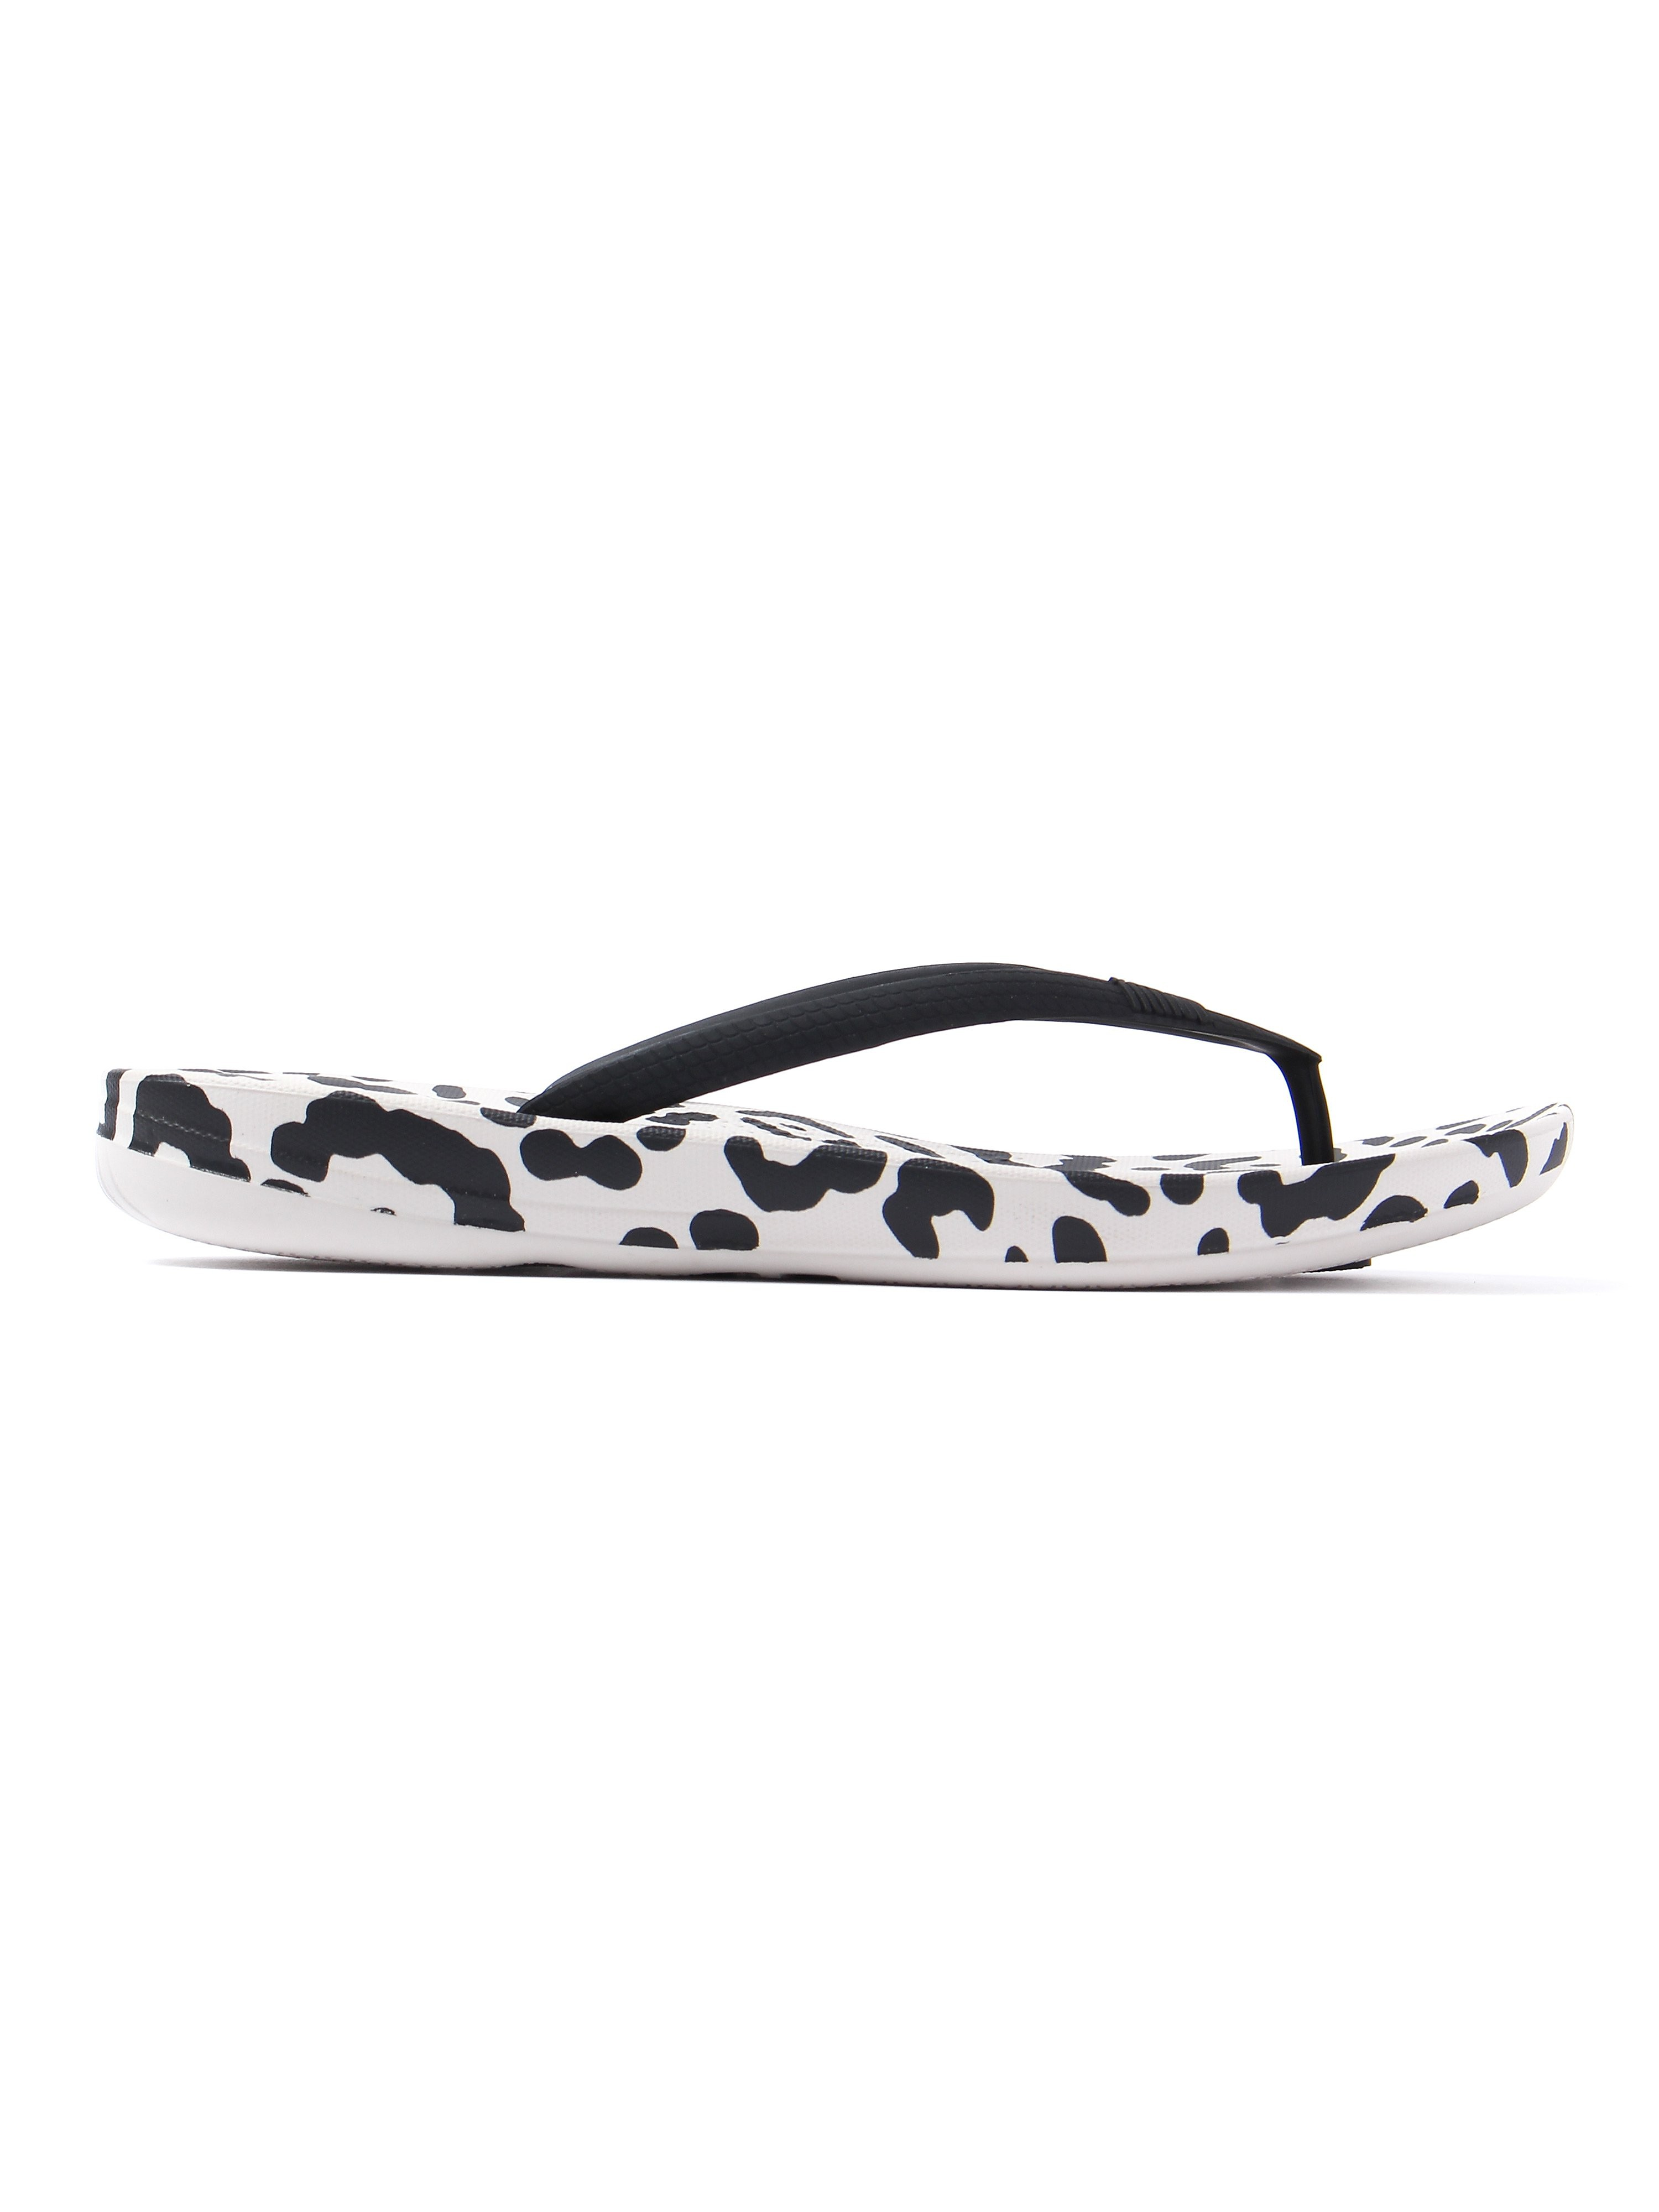 FitFlop Women's IQushion Ergonomic Flip Flops - Black Leopard Print